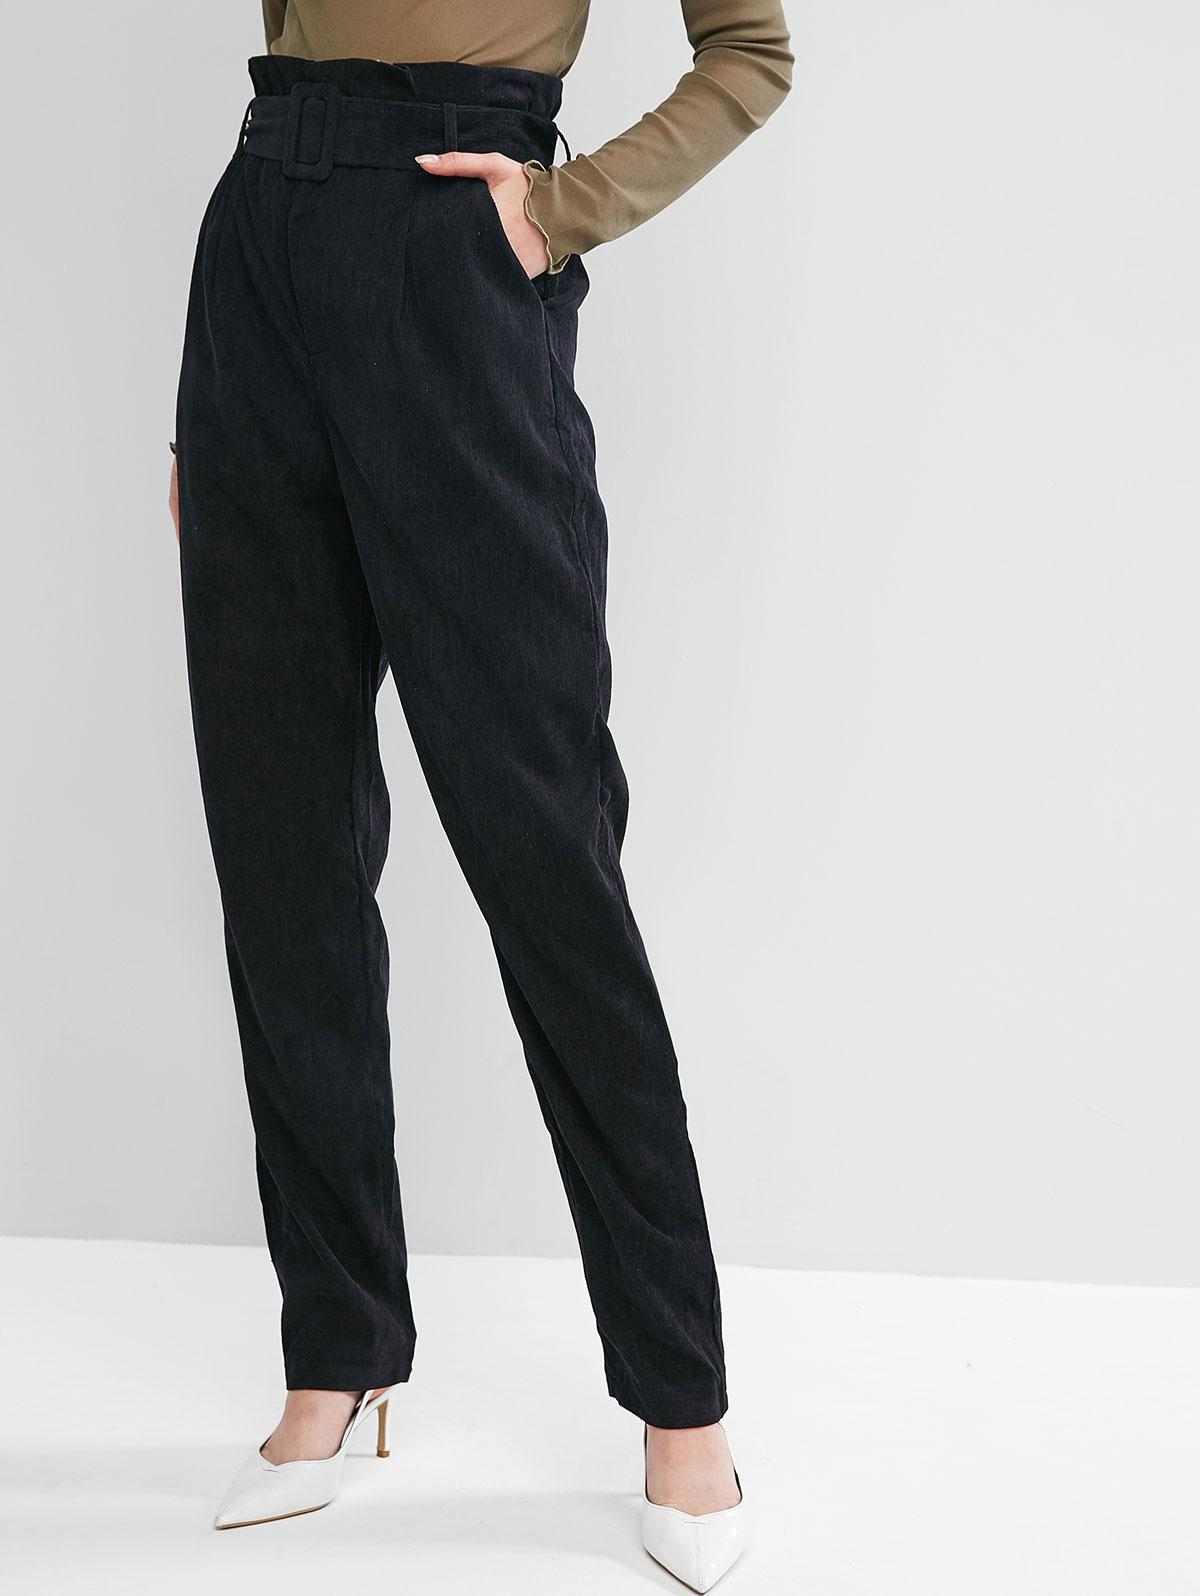 High Waist Belted Corduroy Pants фото